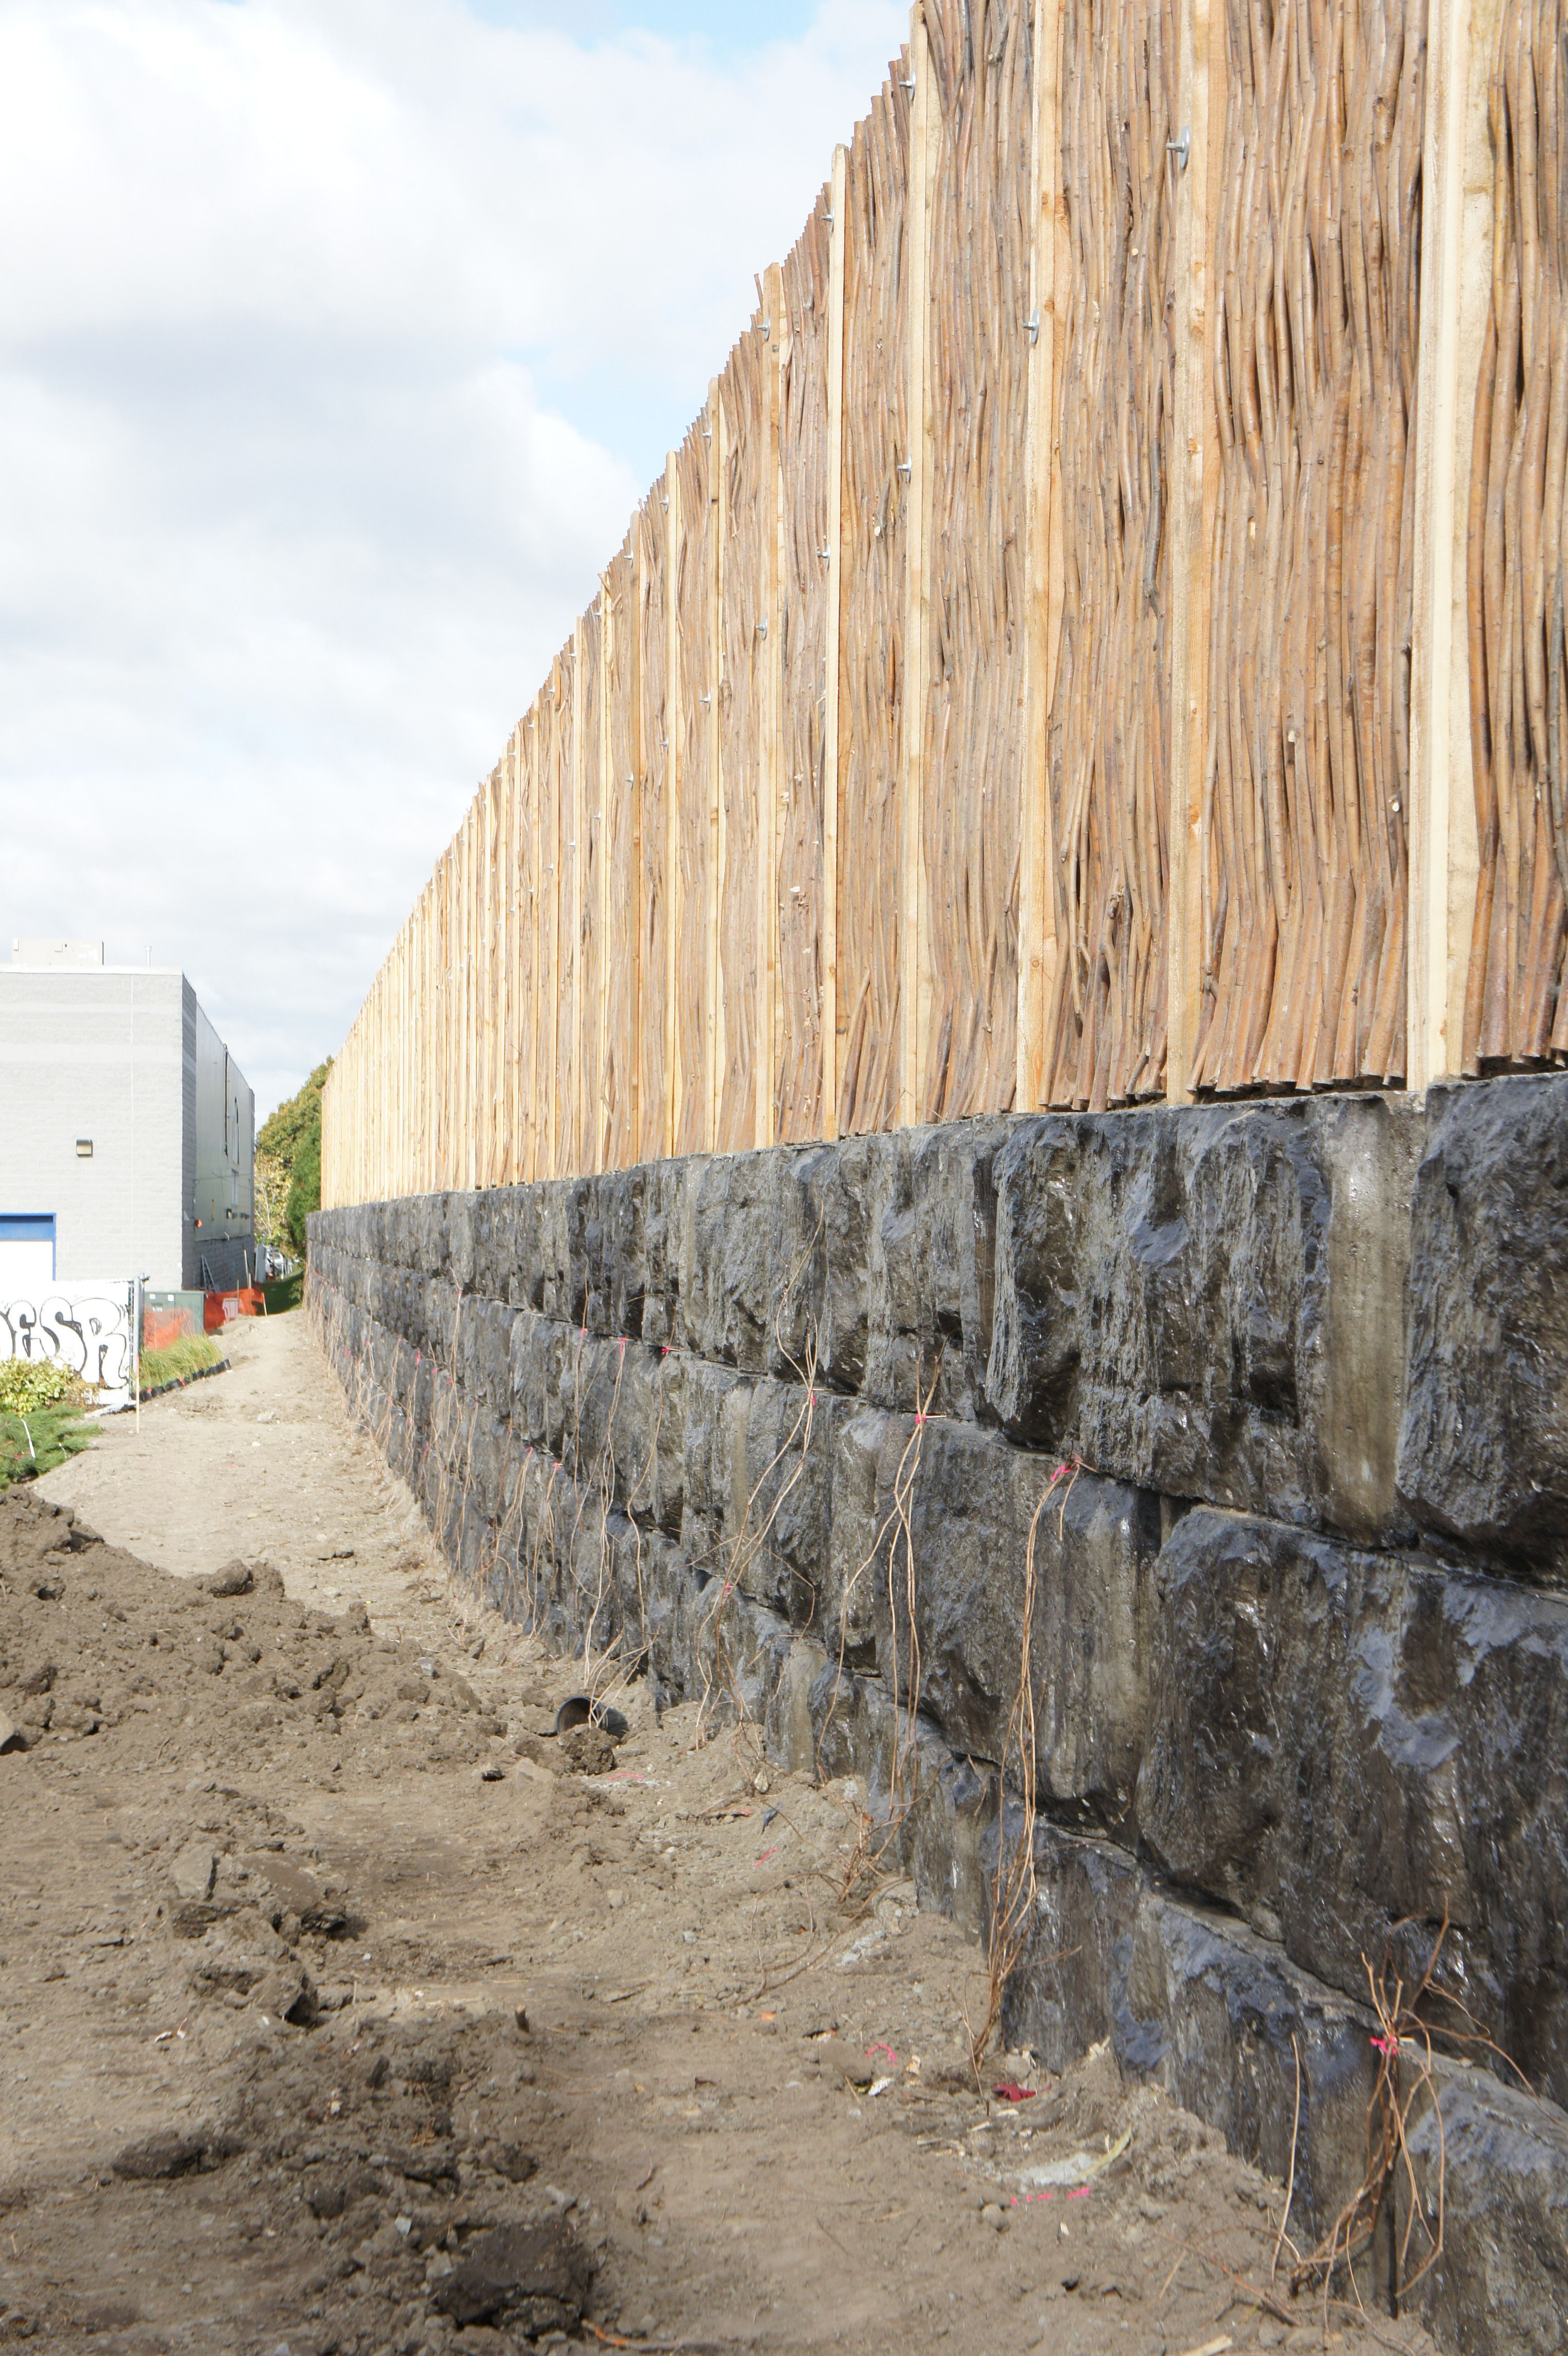 Willow Noise Barrier Installed On Ecologic Concrete Blocs With Recycled Wine Bottles Thegreenbarrier Noisebarrier Willow